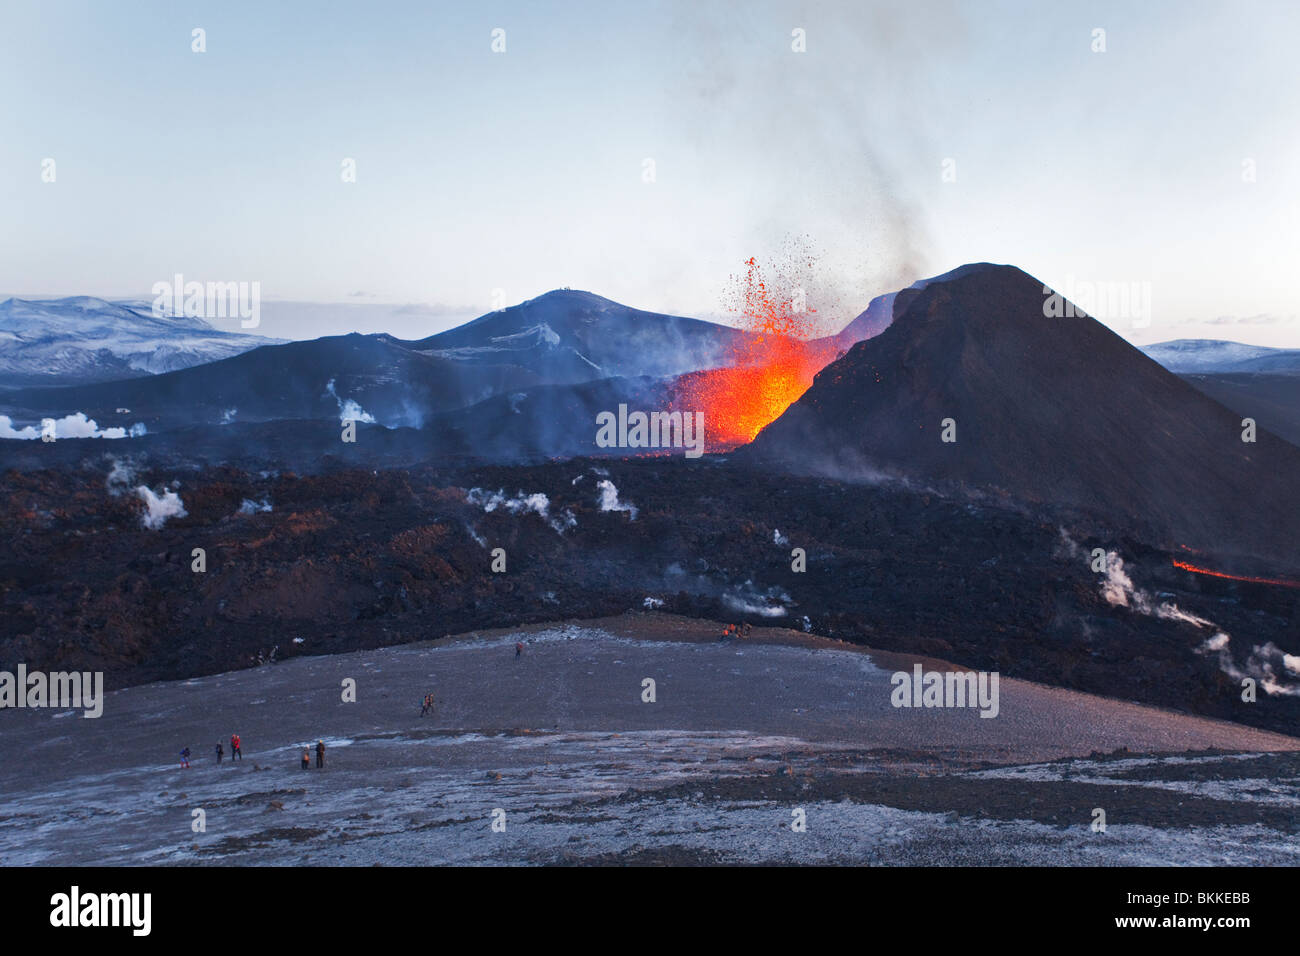 Many tourists and hikers are watching lava flows and lava fountains from the Iceland 2010 eruption of the Eyjafjalla - Stock Image